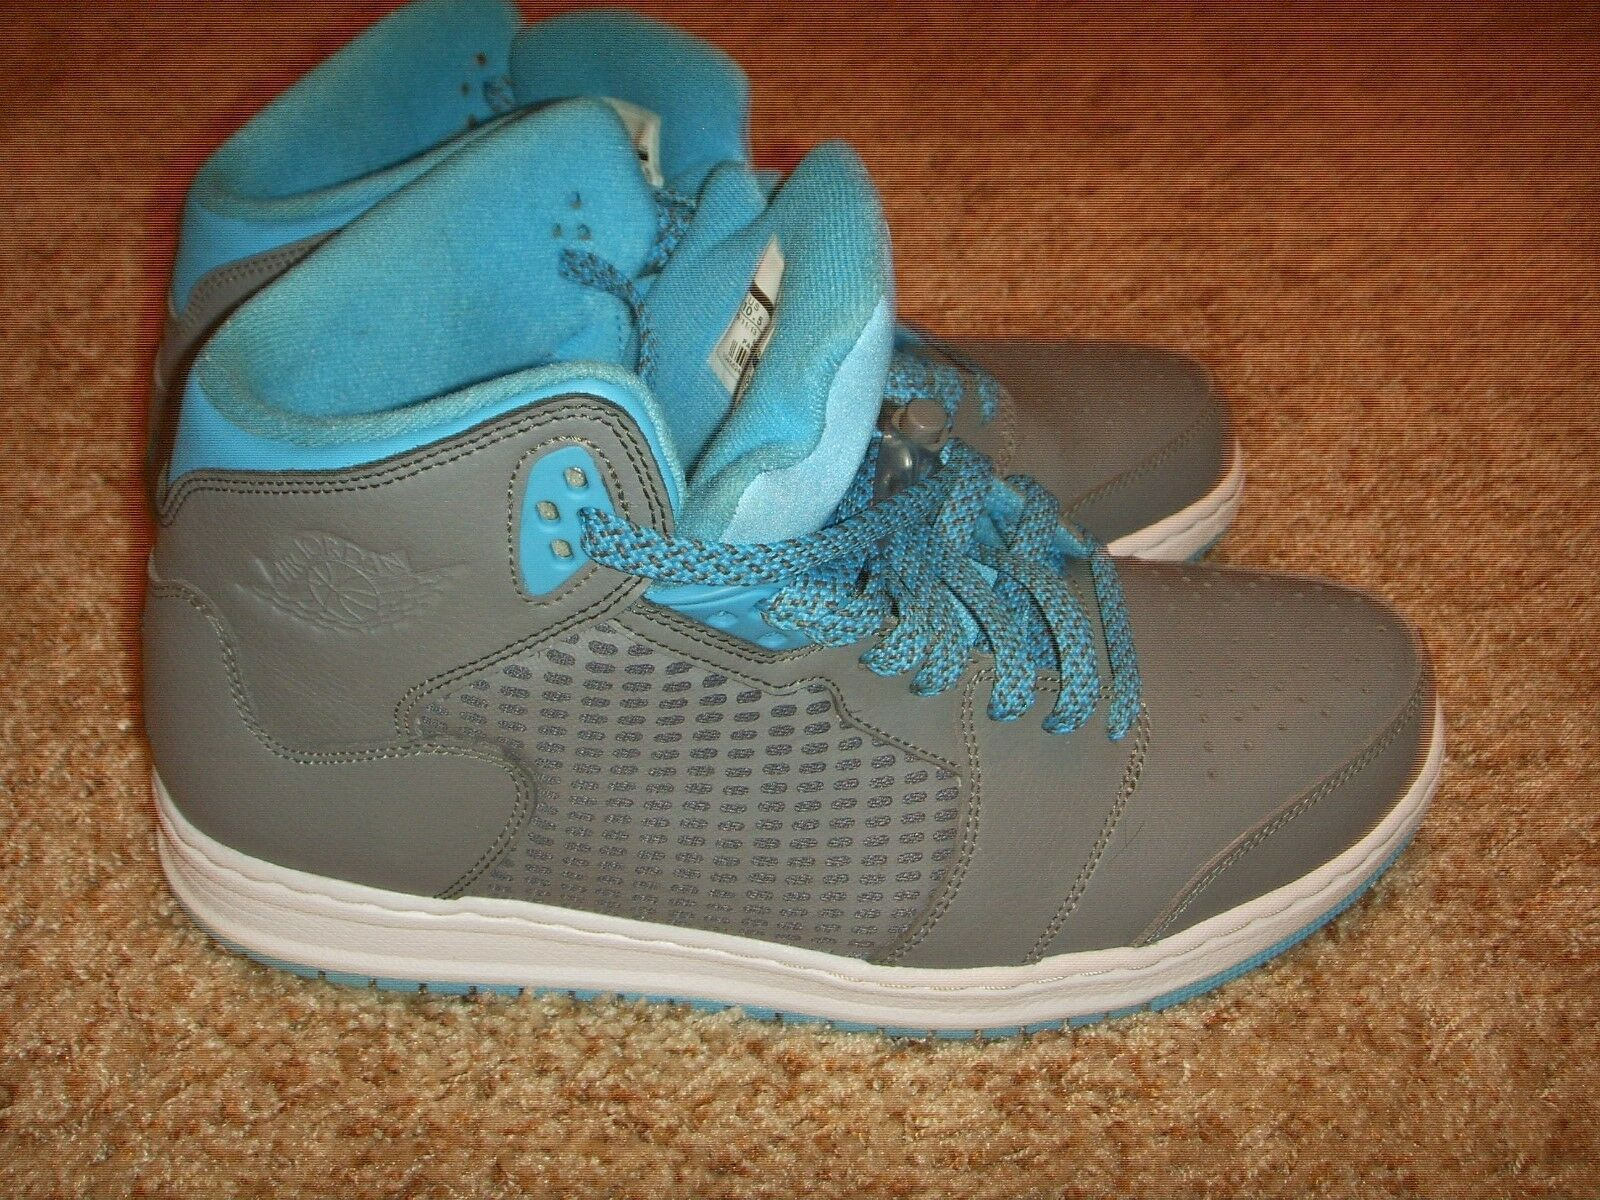 Nike Jordan Prime 5 Grey Powder Blue Basketball Shoes 429489 007 Mens Comfortable Cheap women's shoes women's shoes